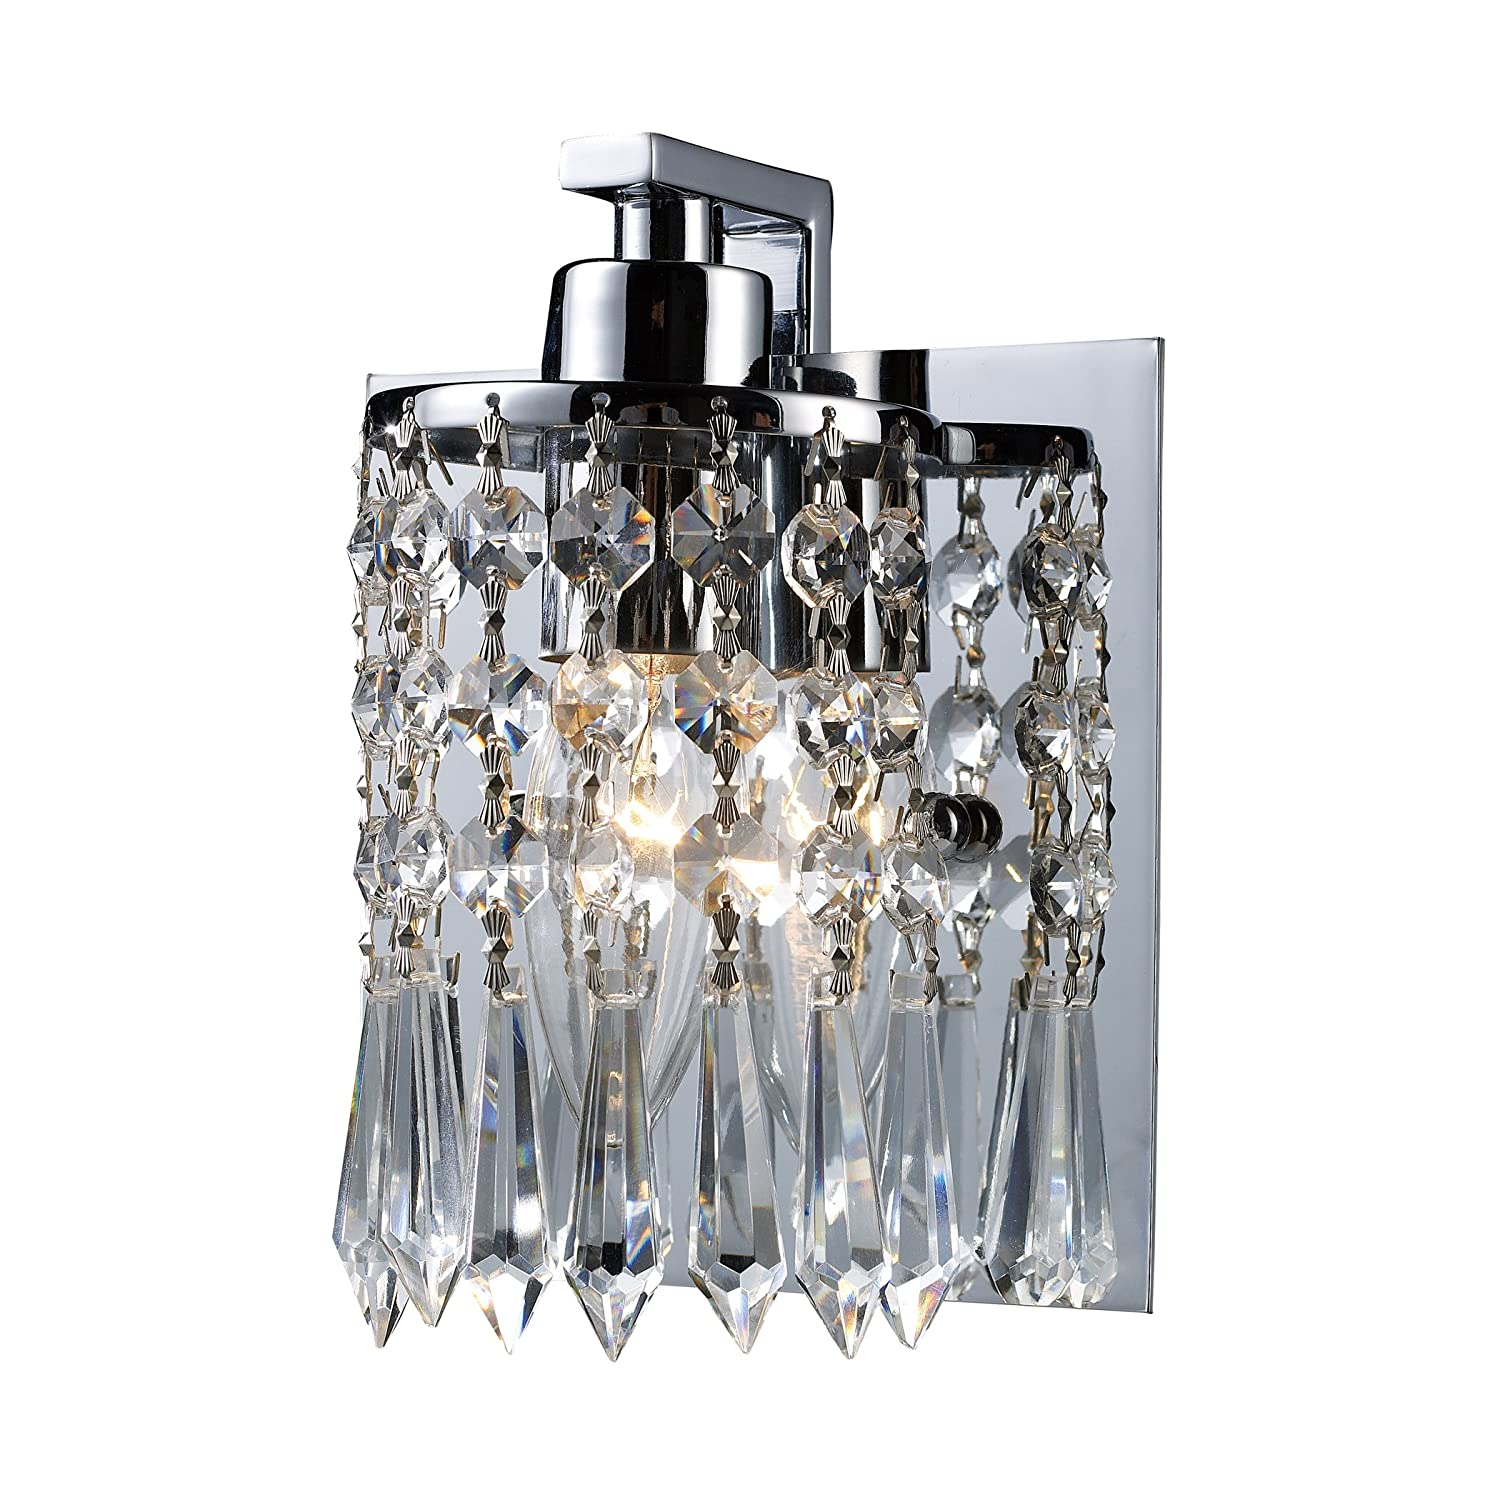 Elk 11228 1 Optix 1-Light Vanity in Polished Chrome